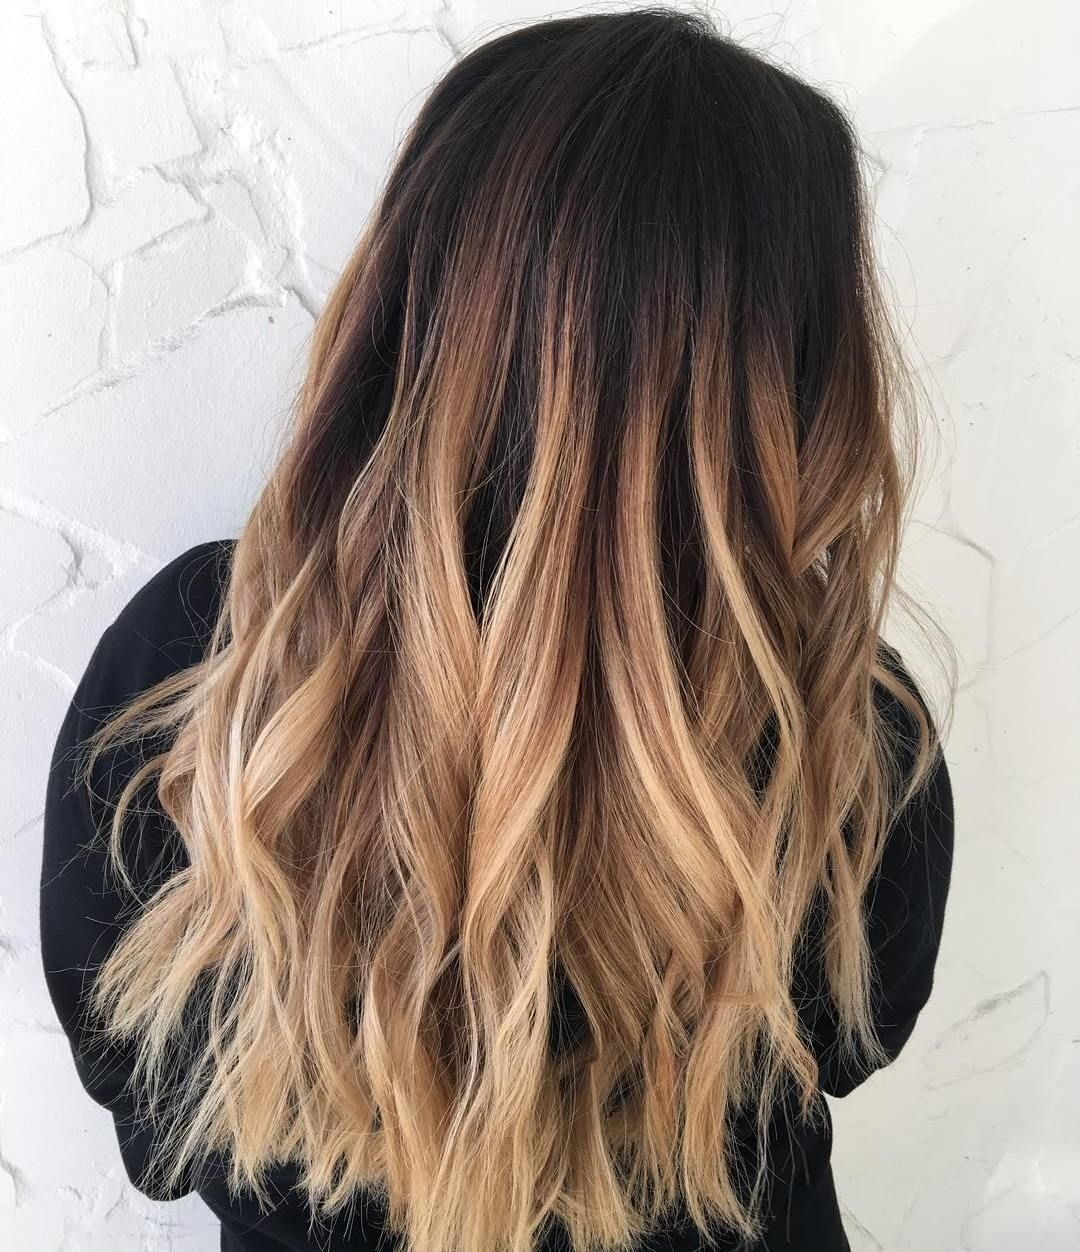 10 Awesome Hair Dye Ideas For Black Hair 60 best ombre hair color ideas for blond brown red and black hair 10 2021